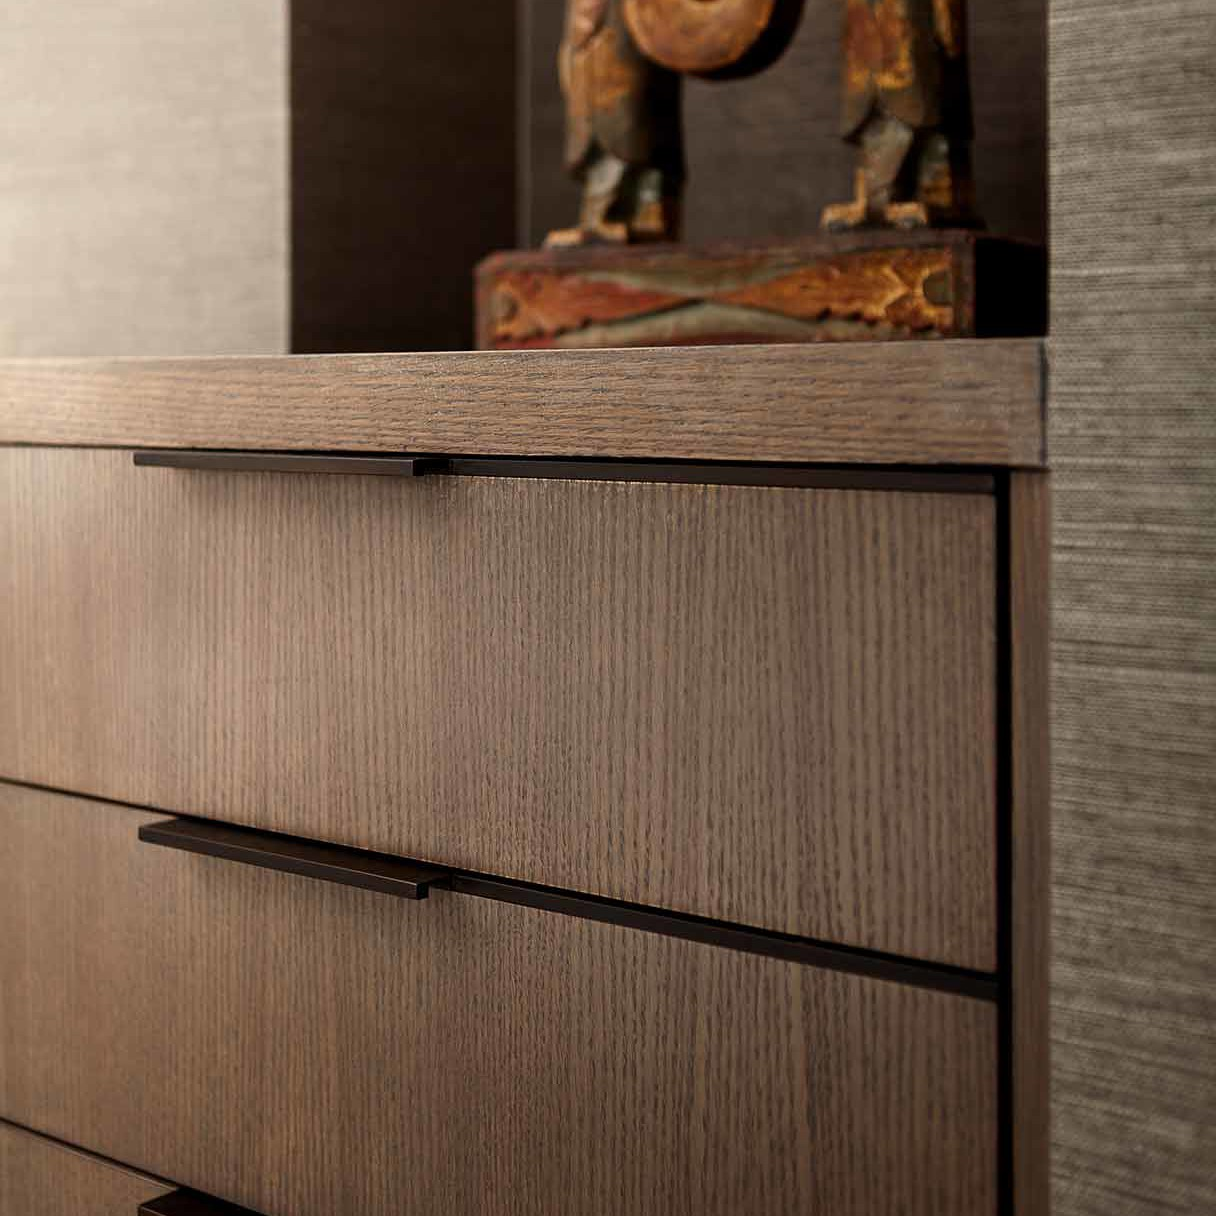 Custom built-in for storage with custom hardware in the form of asymmetrical bronze bands in a NYC apartment